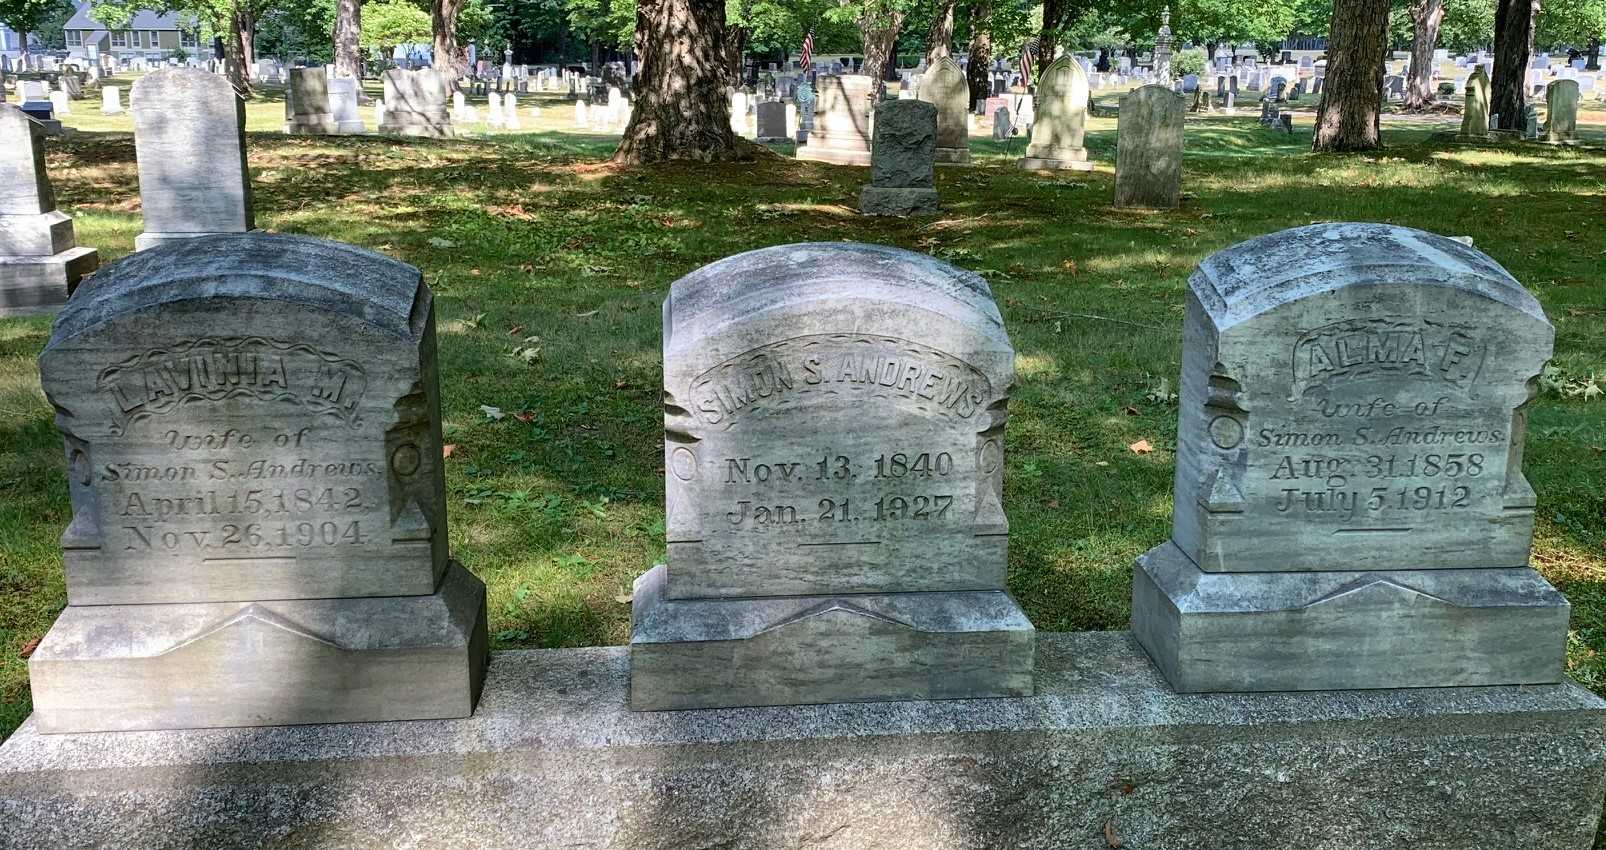 Three connected headstones for Simon Andrews (died 1927) and his first wife, Lavinia (died 1904) and second wife, Alma . (died 1912).